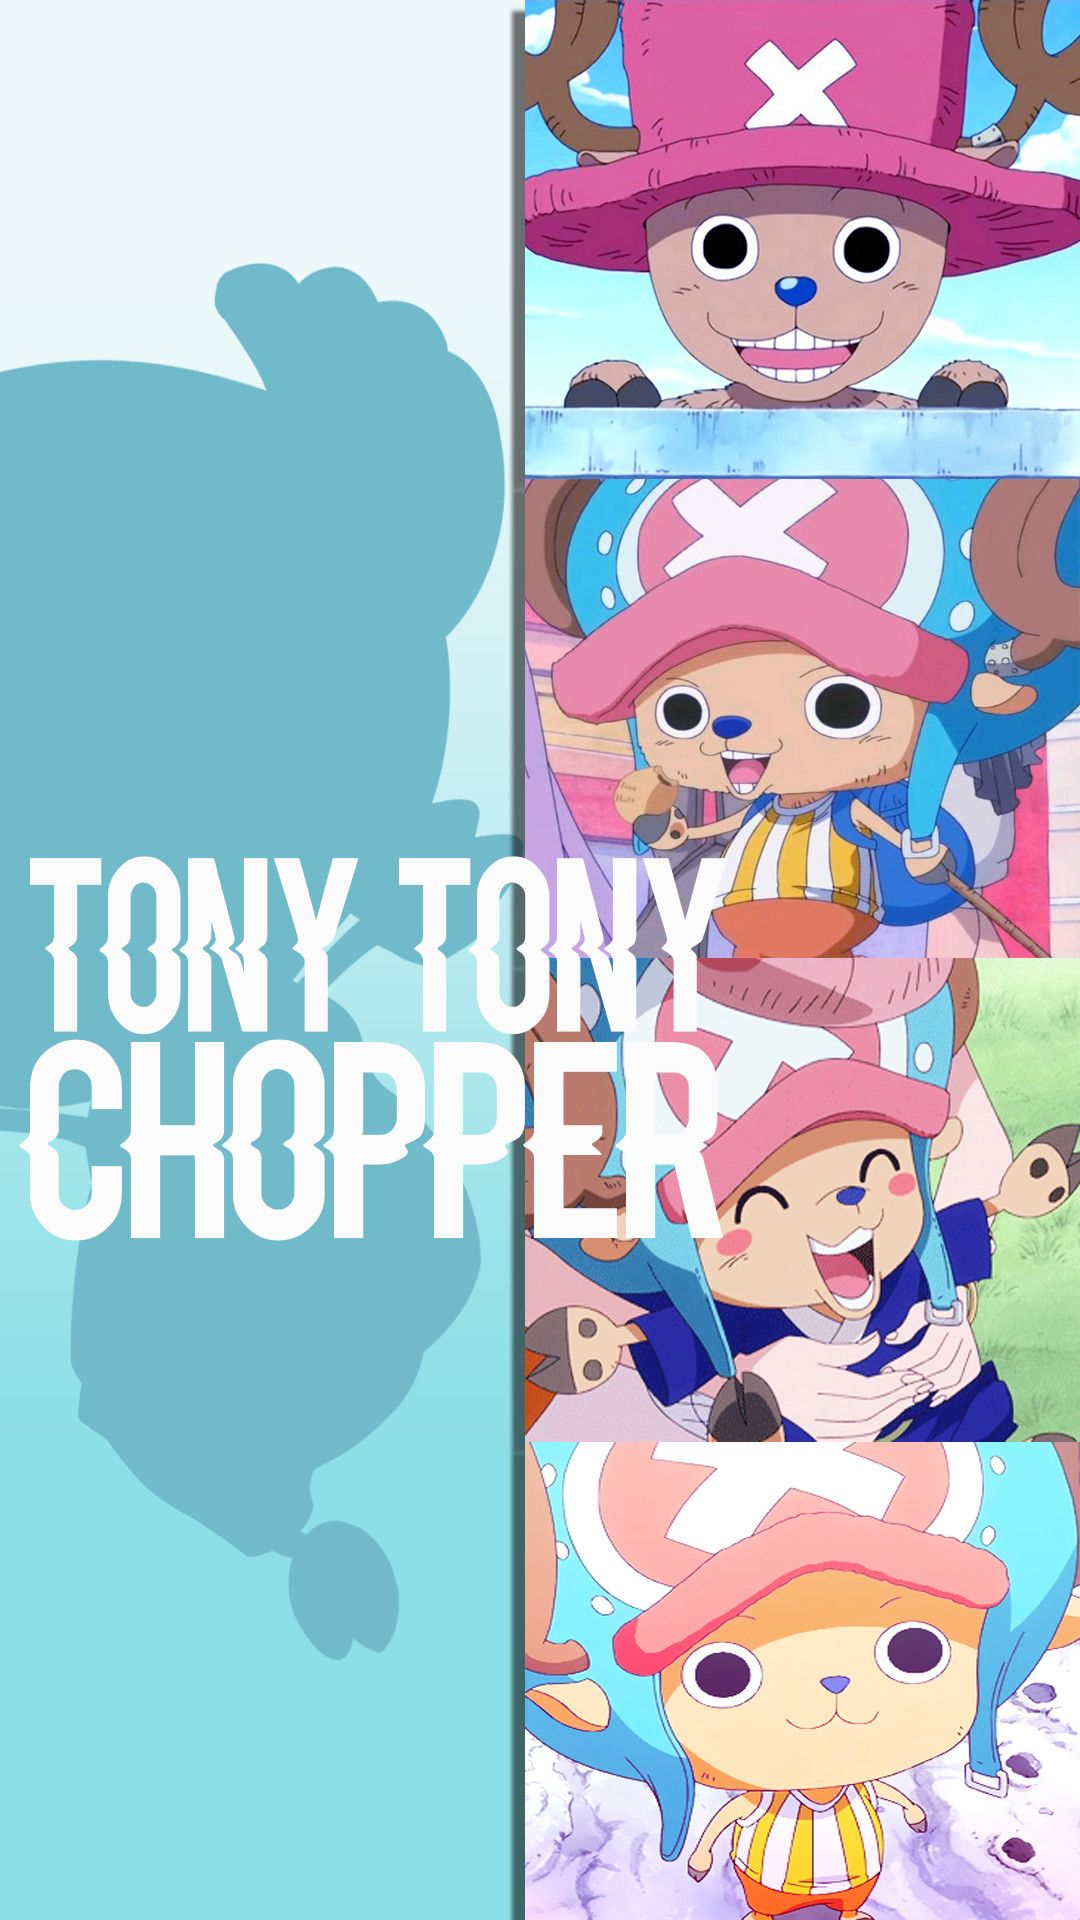 145 One Piece Chopper Android Iphone Desktop Hd Backgrounds Wallpapers 1080p 4k 1080x1920 2021